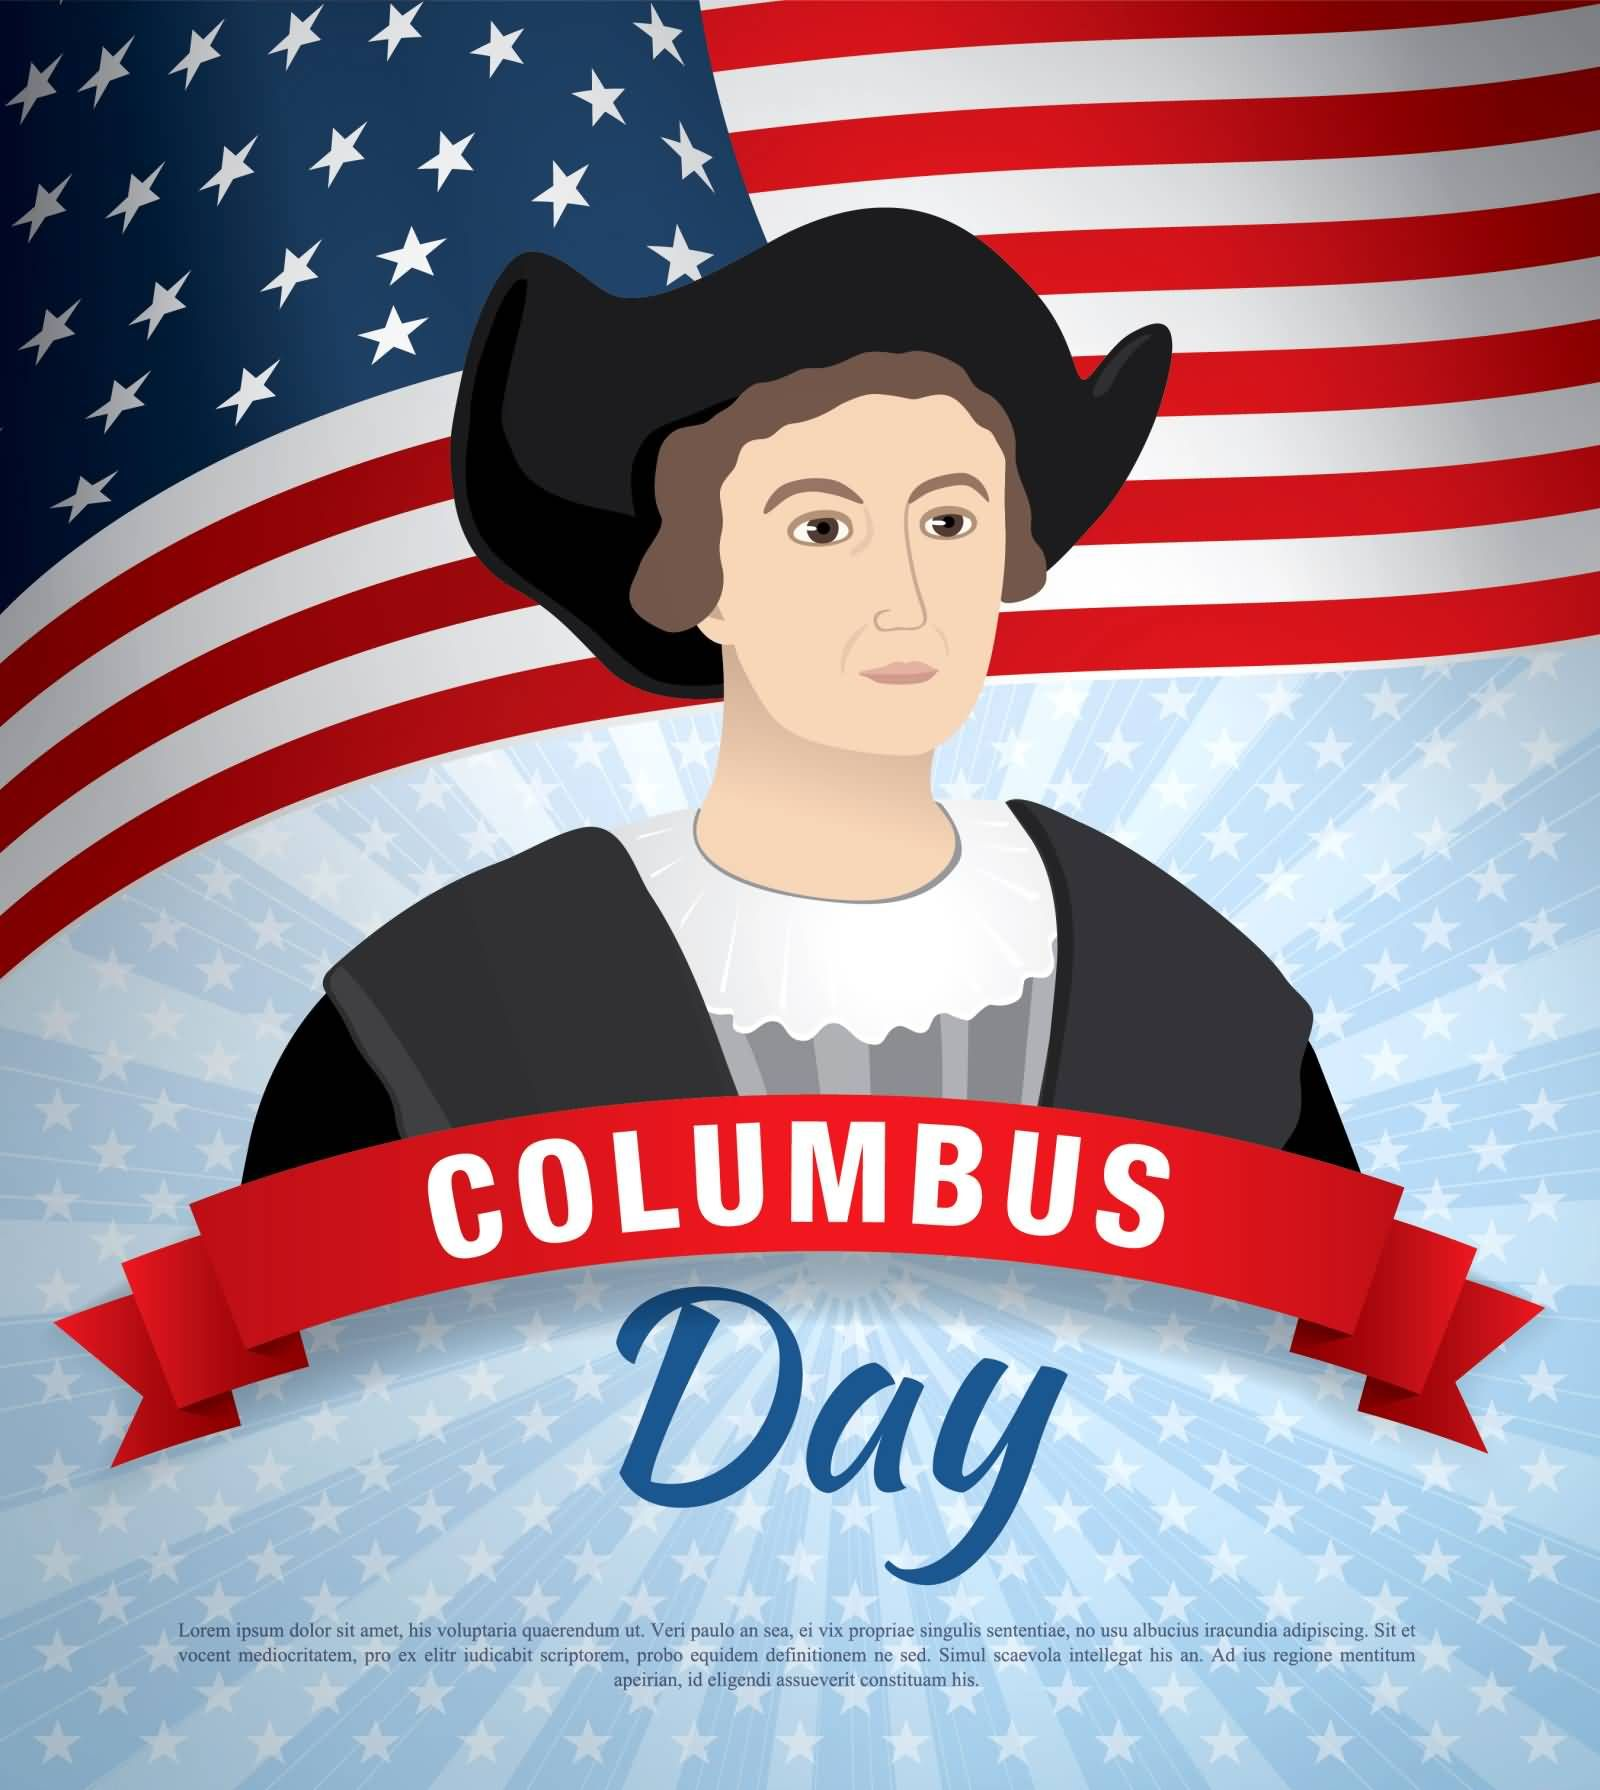 Columbus Day Christopher Columbus Clipart Image